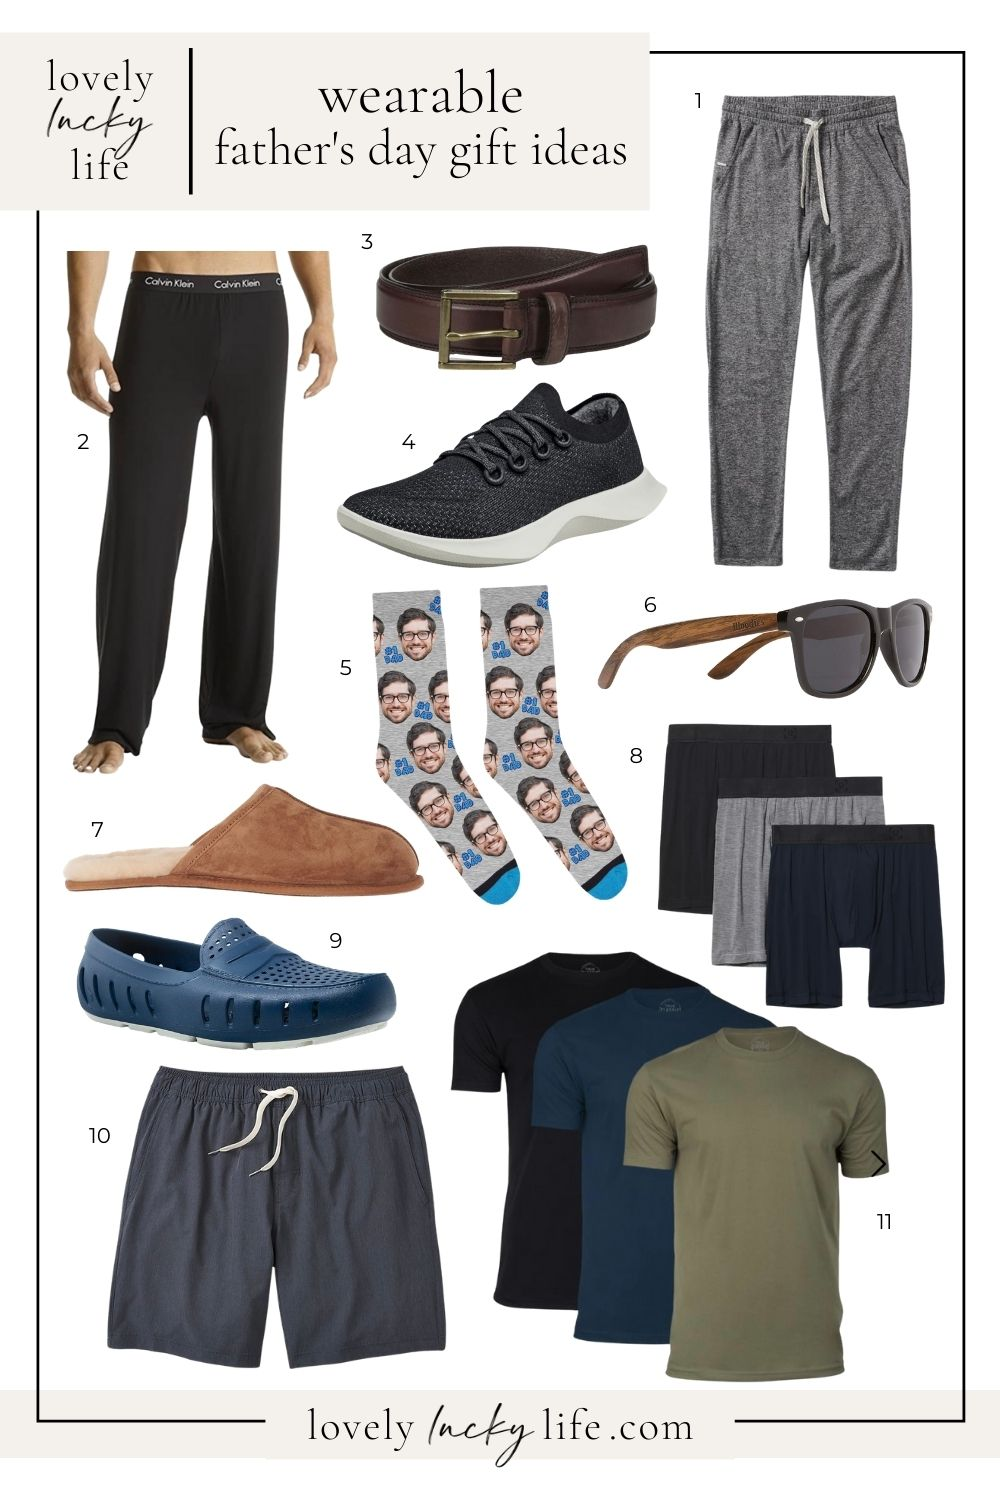 Wearable Gift Ideas for Father's Day on LovelyLuckyLife.com